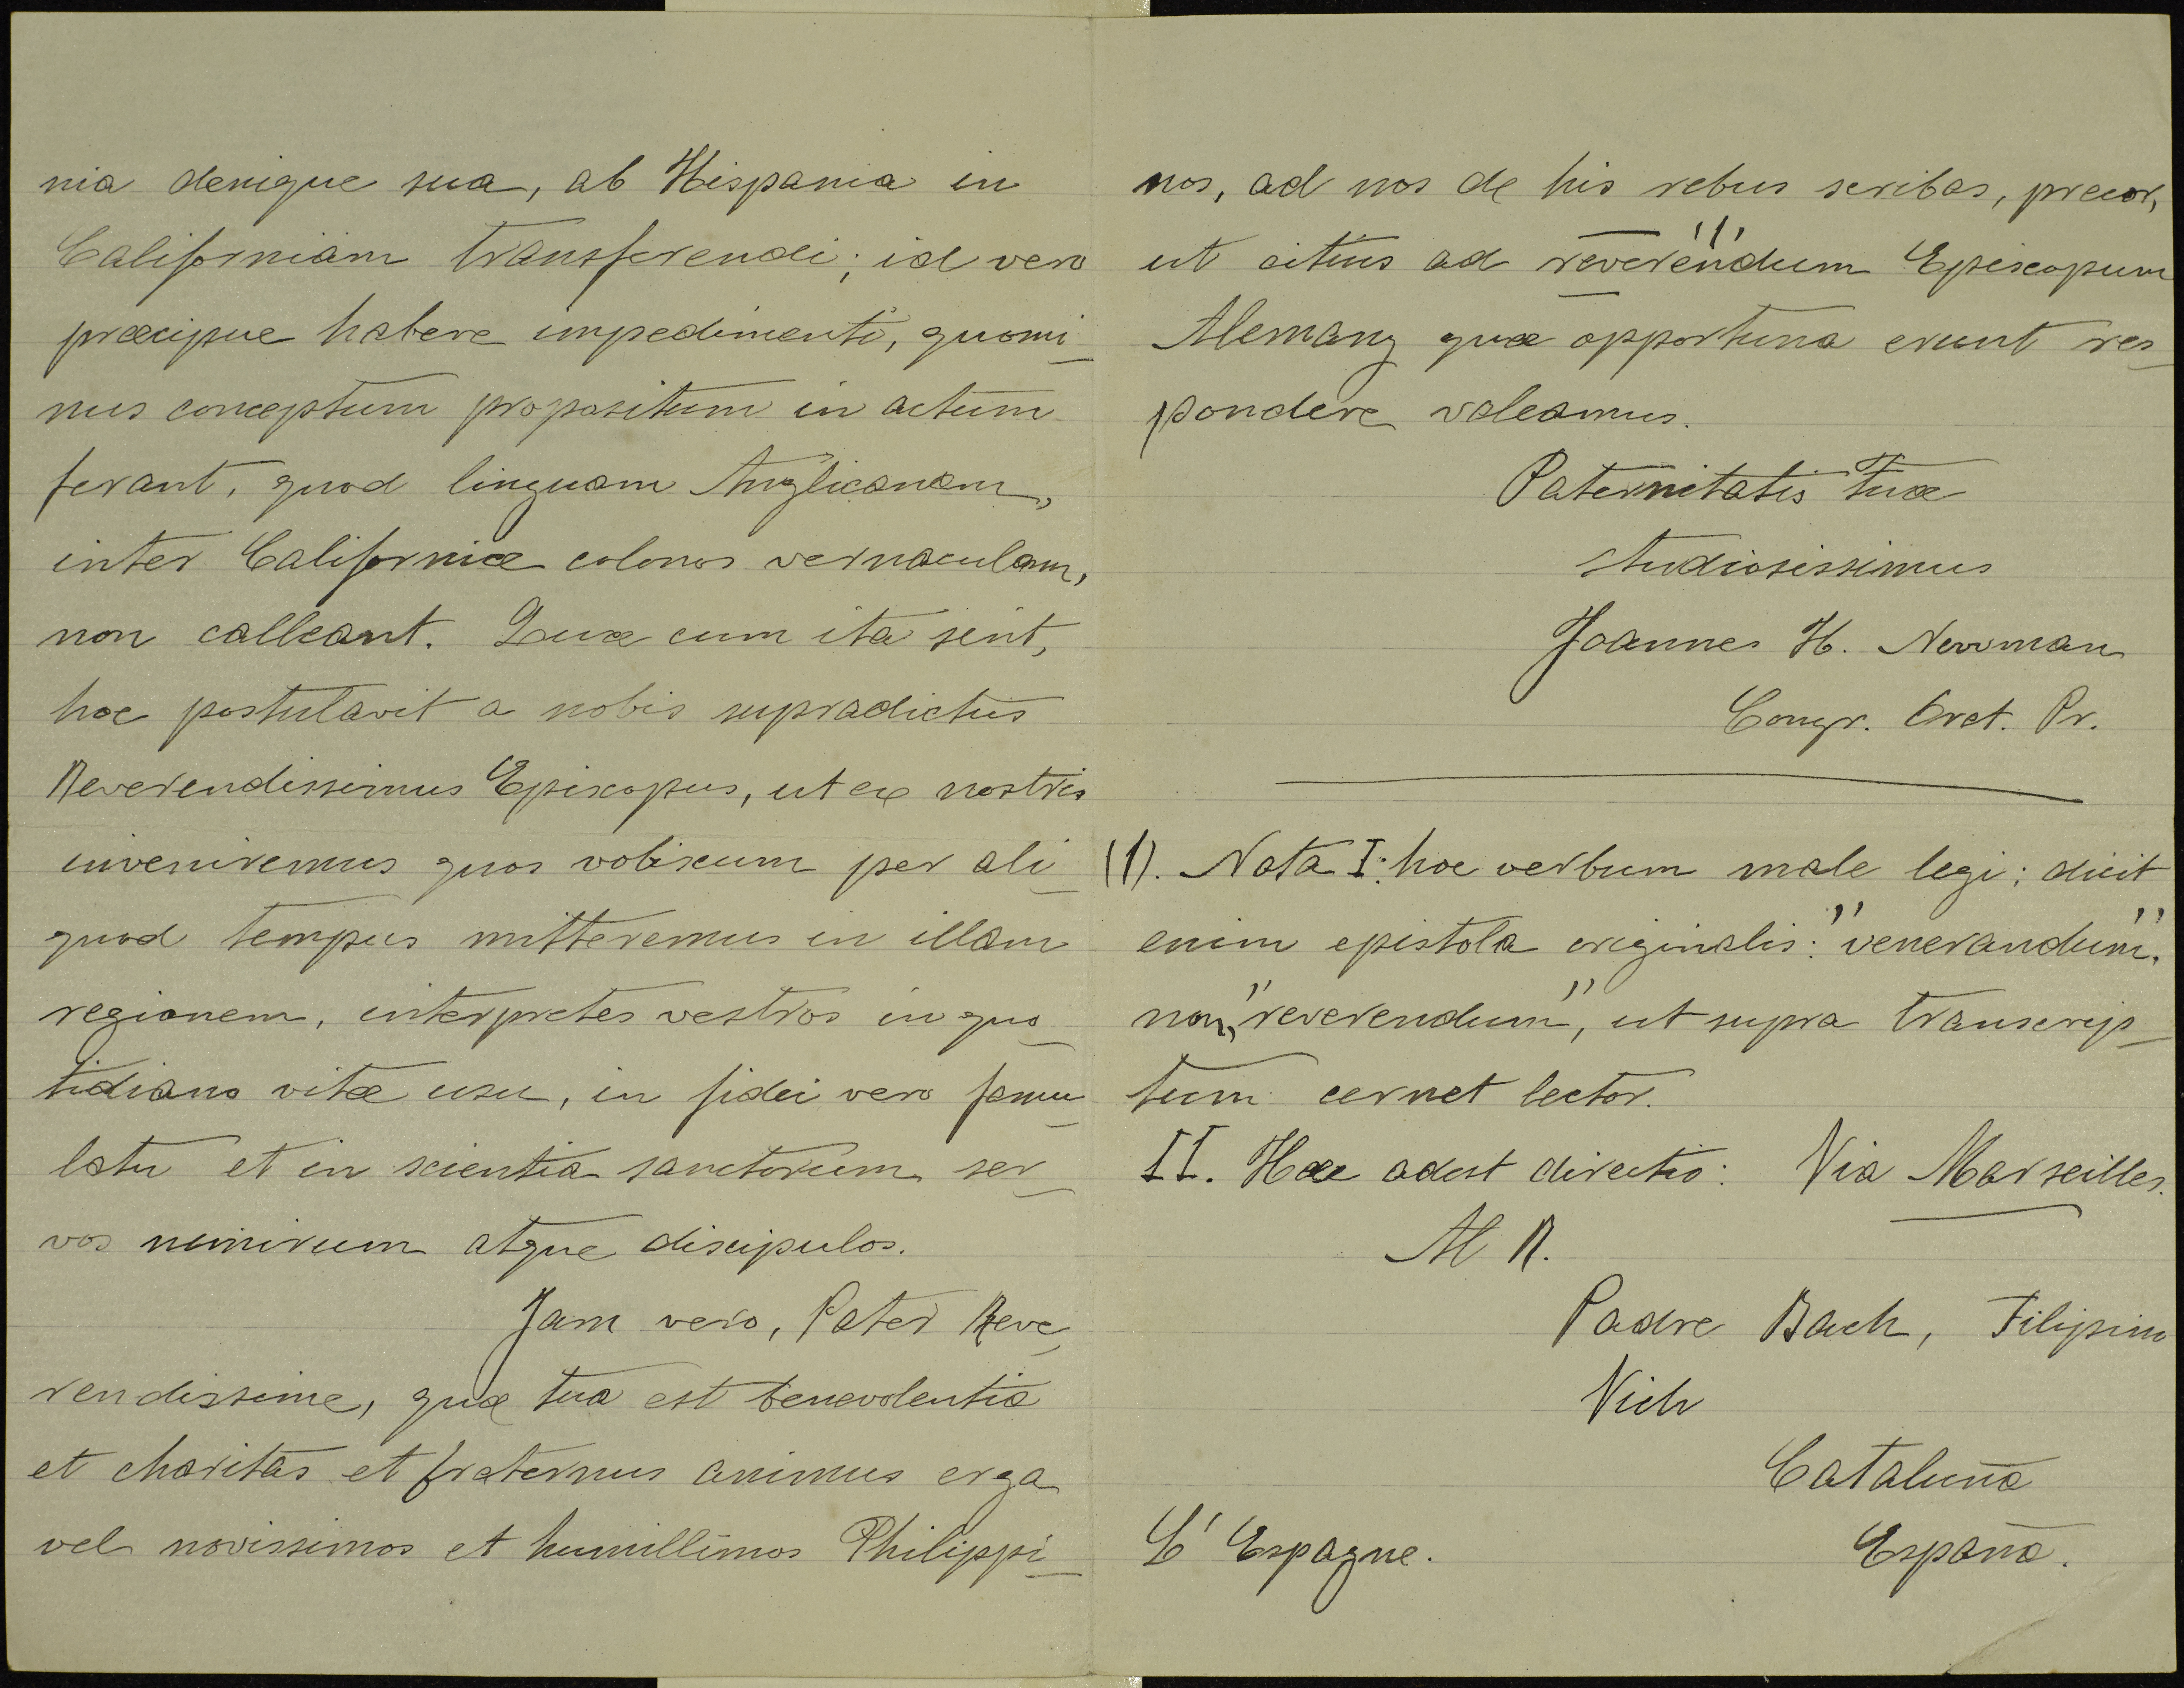 NEWMAN LETTER IN LATIN